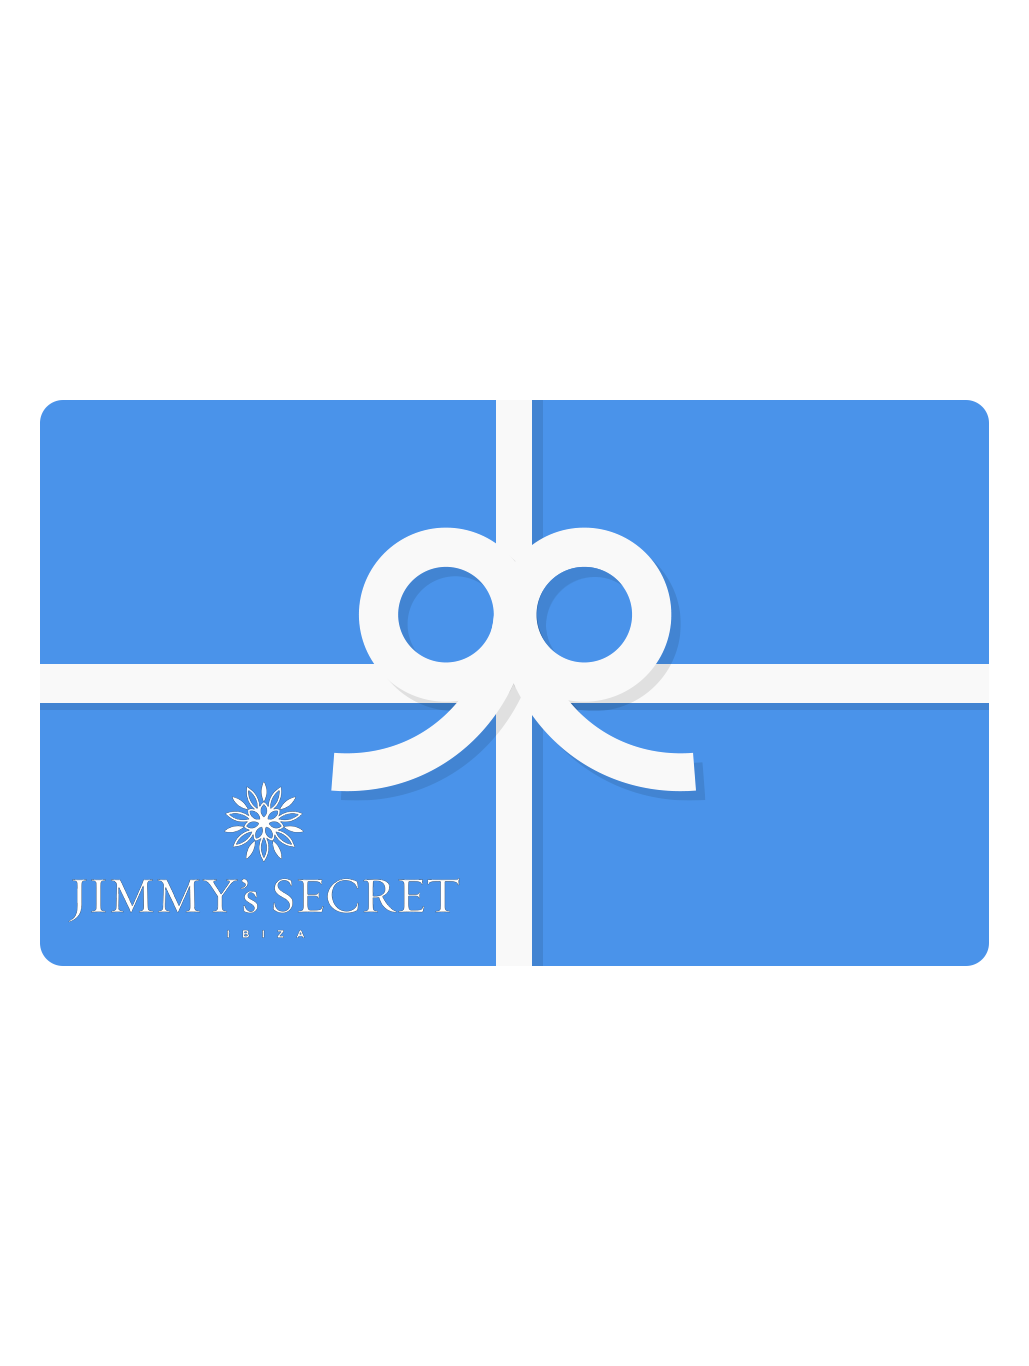 Gift Card by Jimmys Secret Ibiza